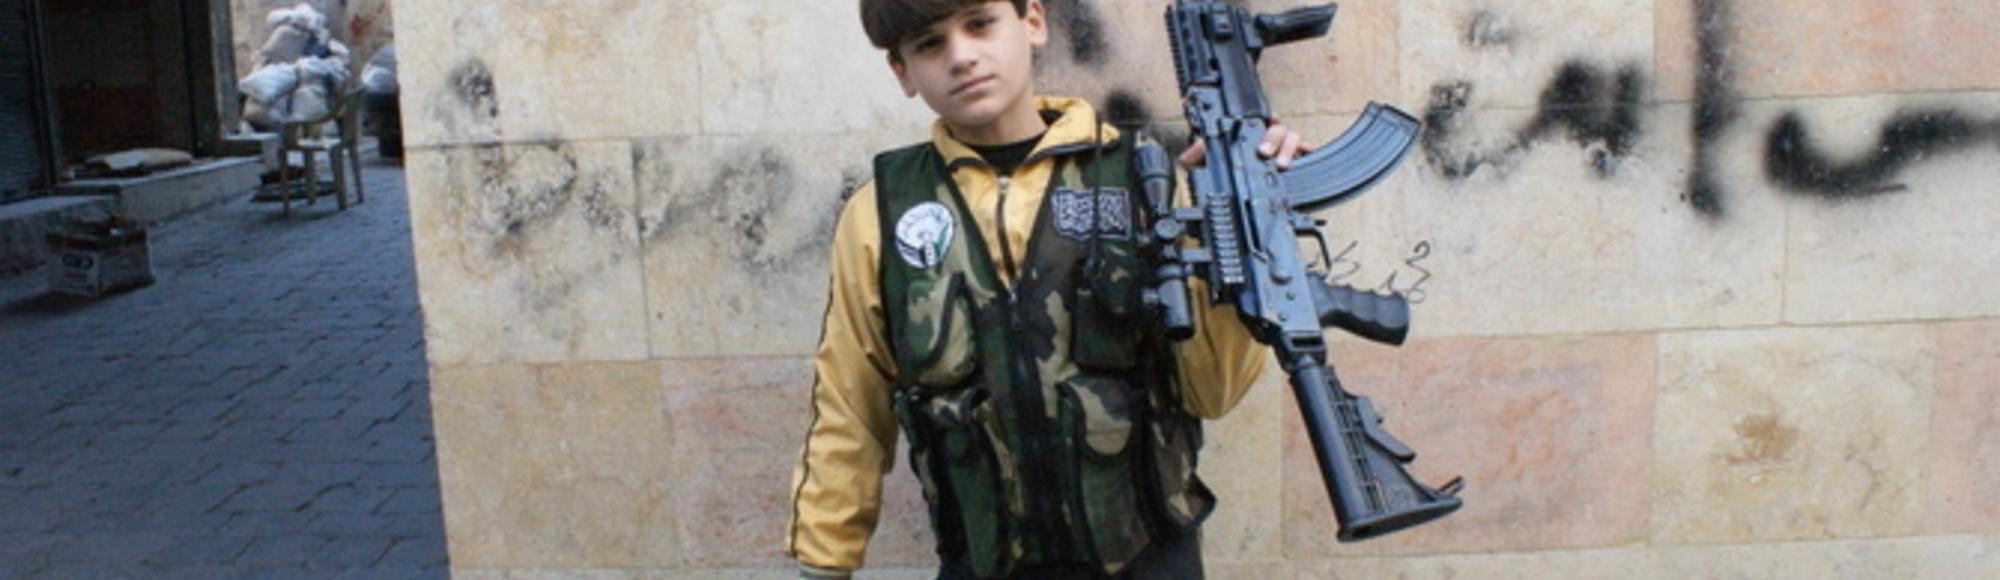 The Little Lion: Syria's 11-Year-Old Killing Machine